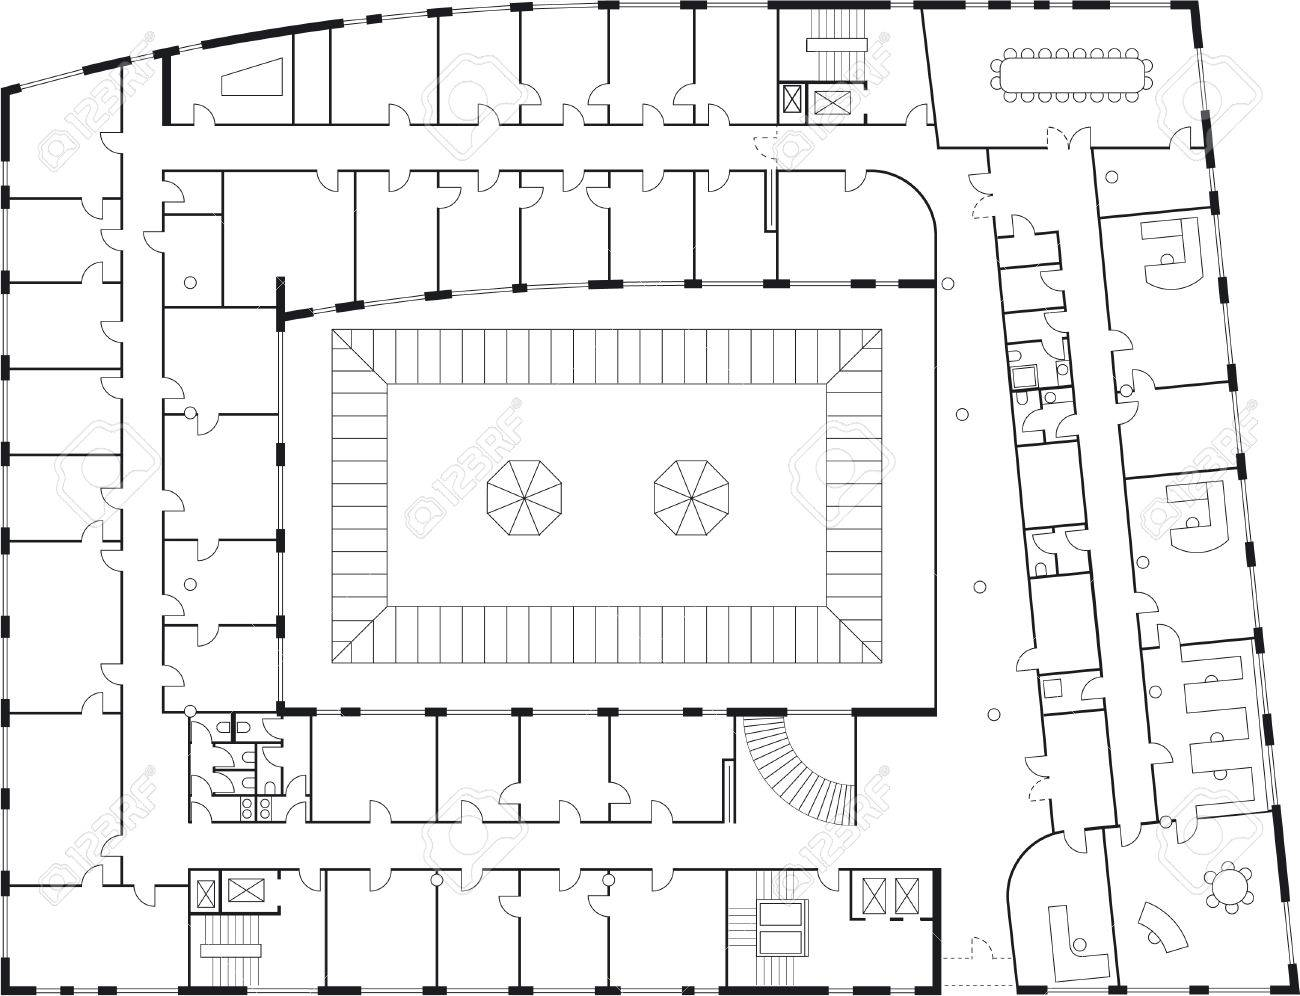 Floor Plan Of A Major Building Furniture And Sanitary Equipment